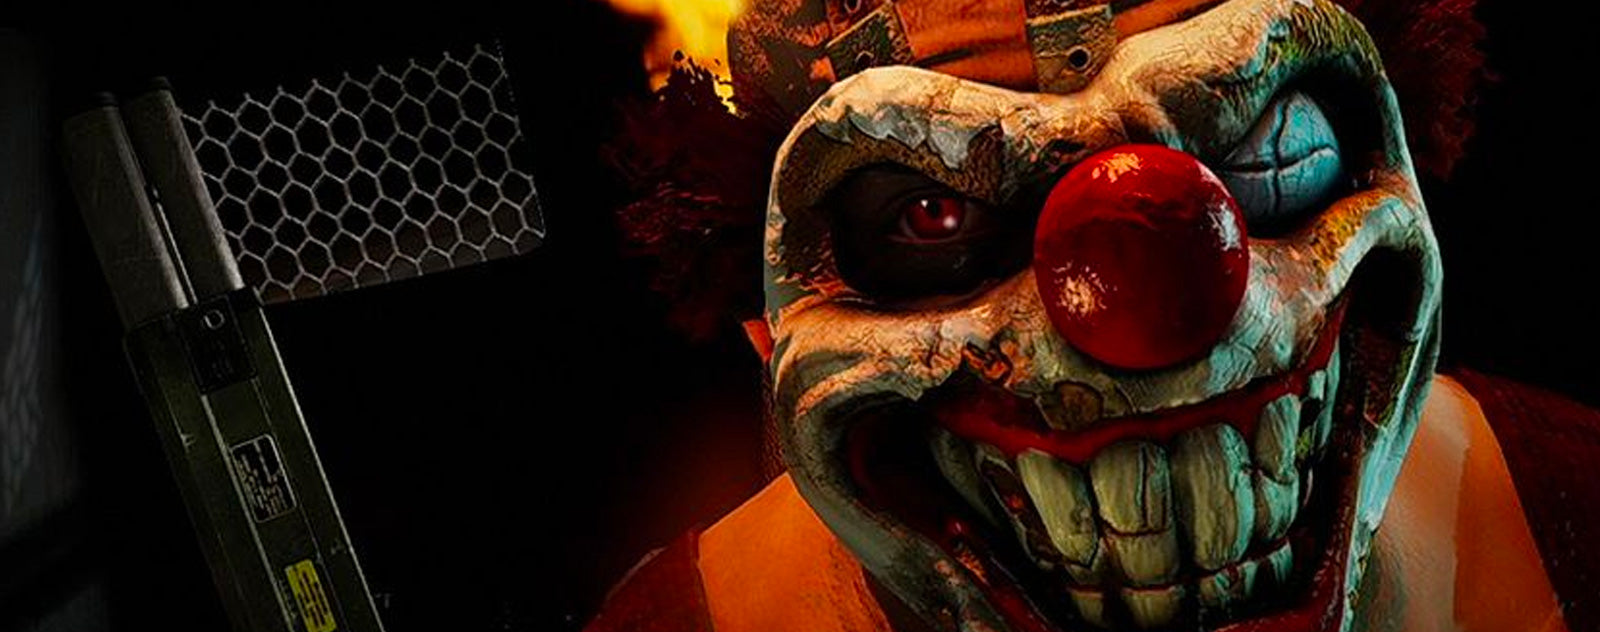 Twisted metal clown